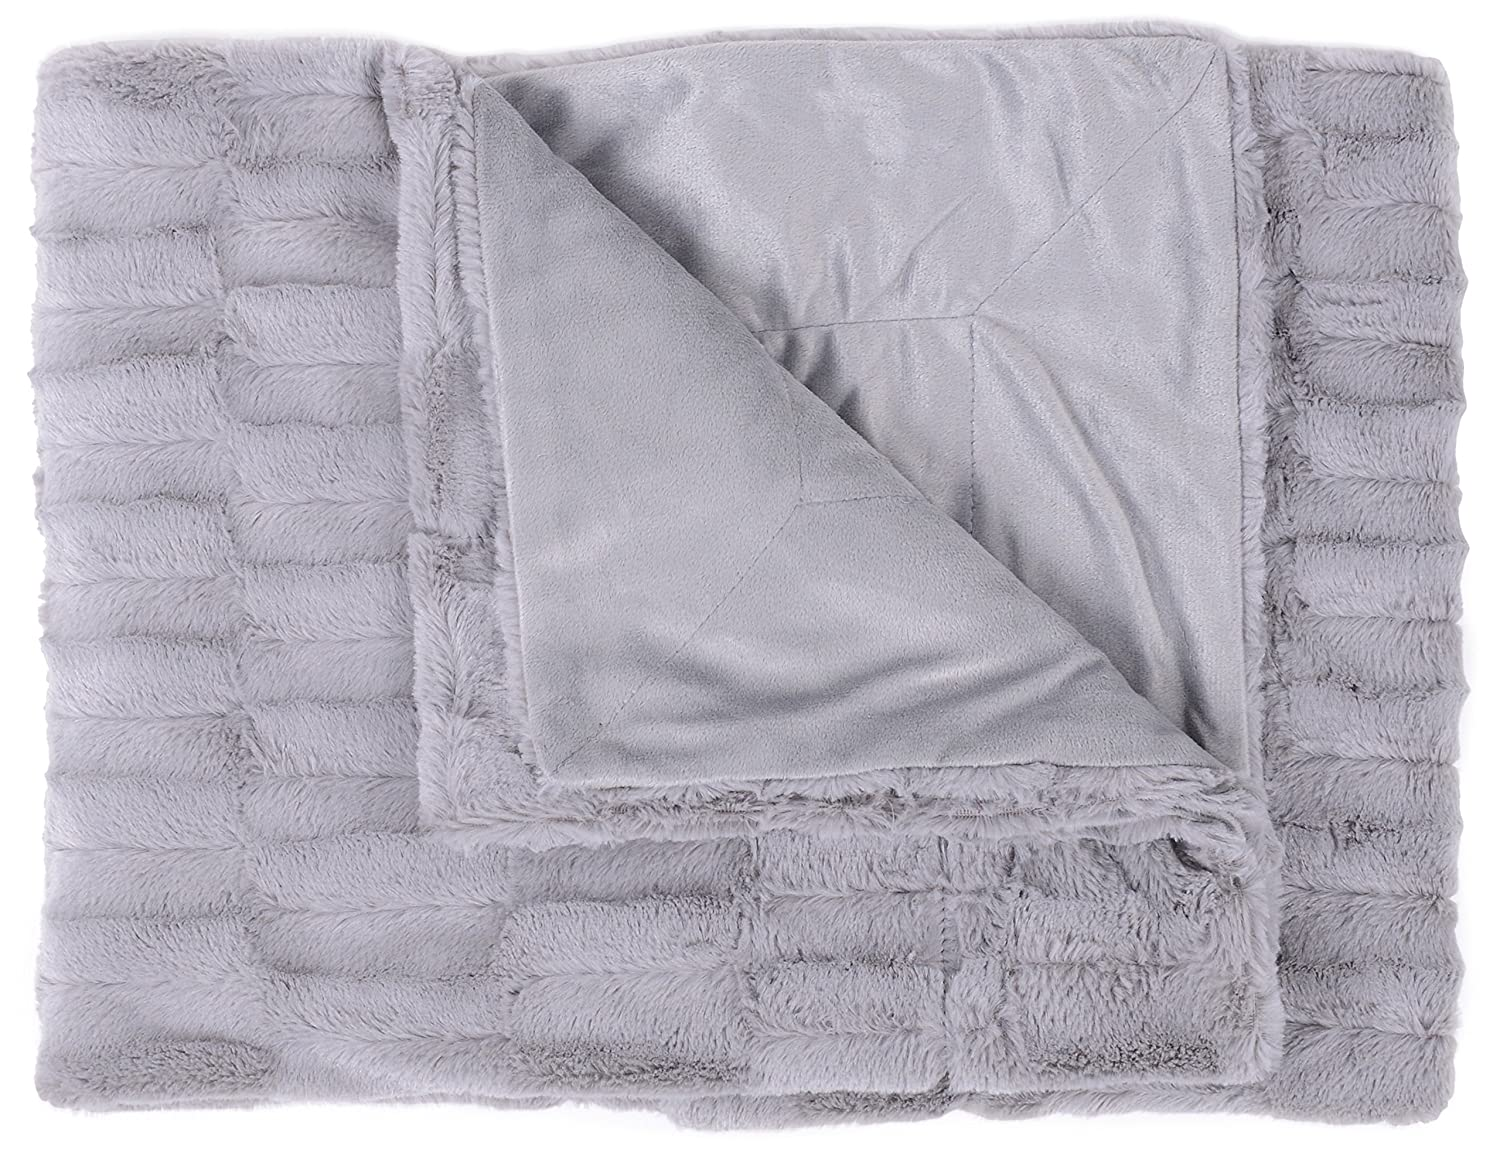 Box Pattern Ivory THROW-BOX-IVRY 50 x 60 Sweet Home Collection Casie Decorative Reversible Faux Fur and Mink Throw Blanket